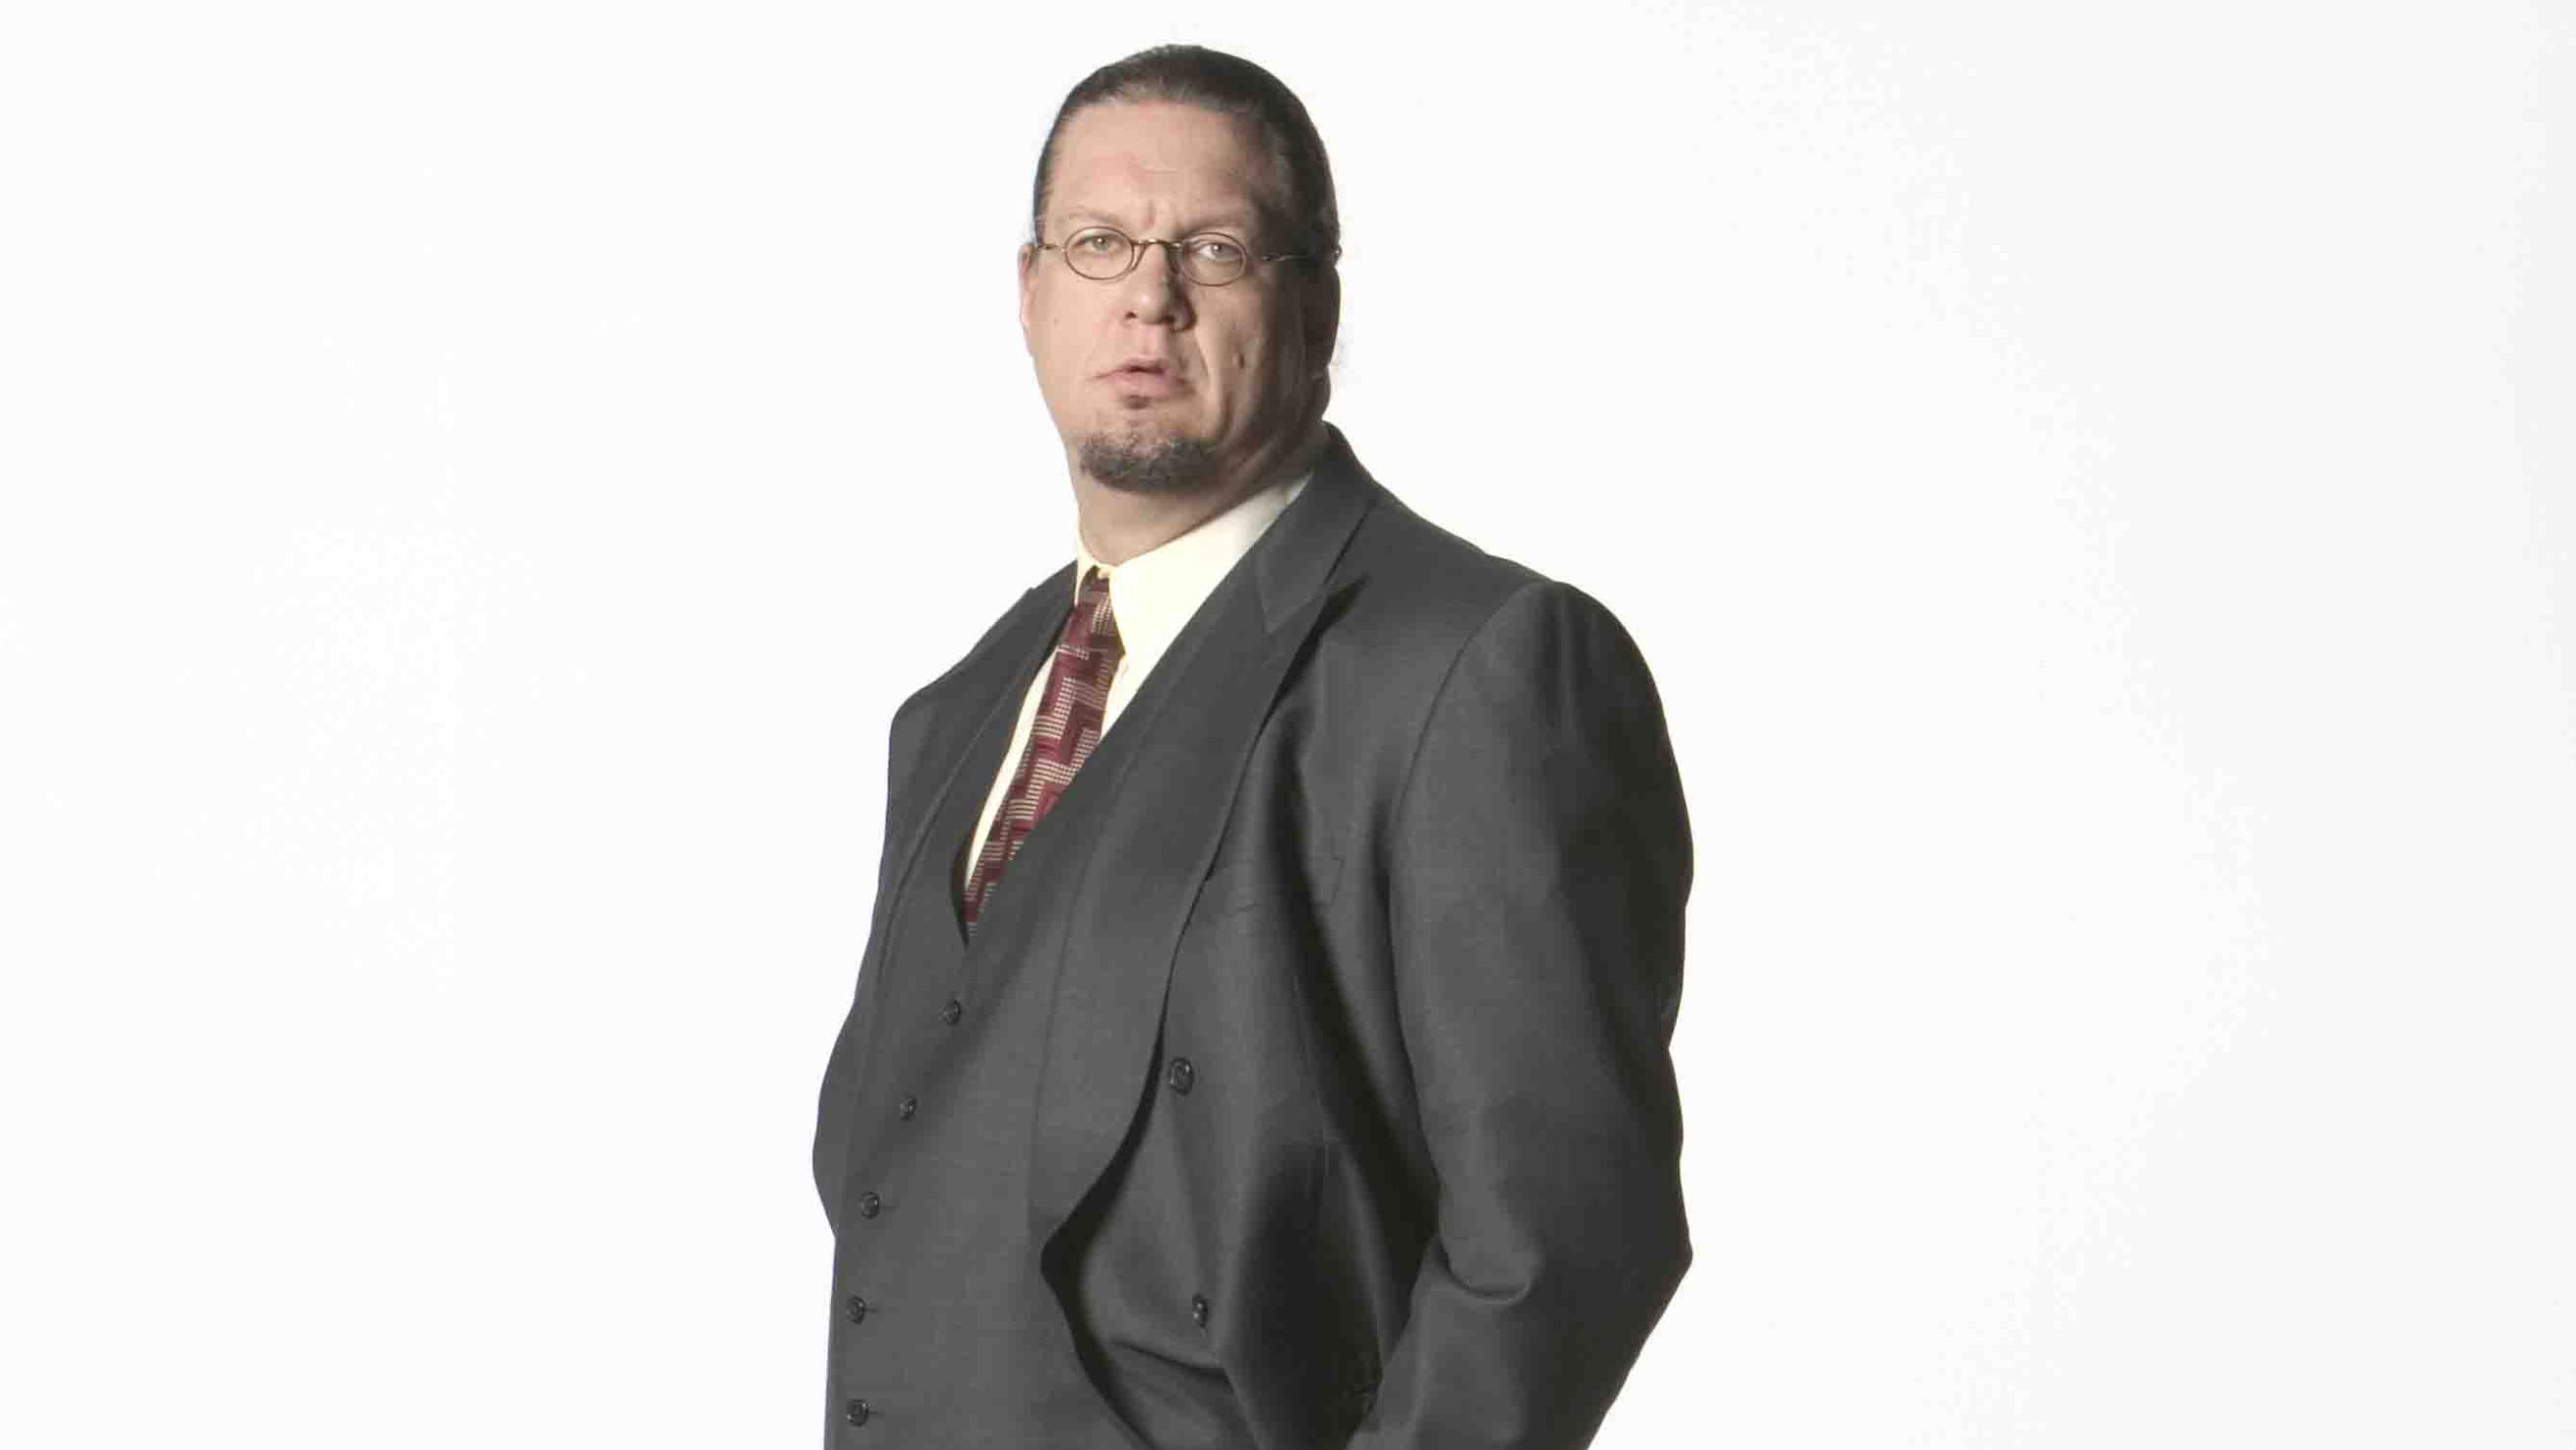 penn jillette tvpenn jillette twitter, penn jillette wife, penn jillette tv, penn jillette height, penn jillette lose weight, penn jillette daughter, penn jillette losing weight